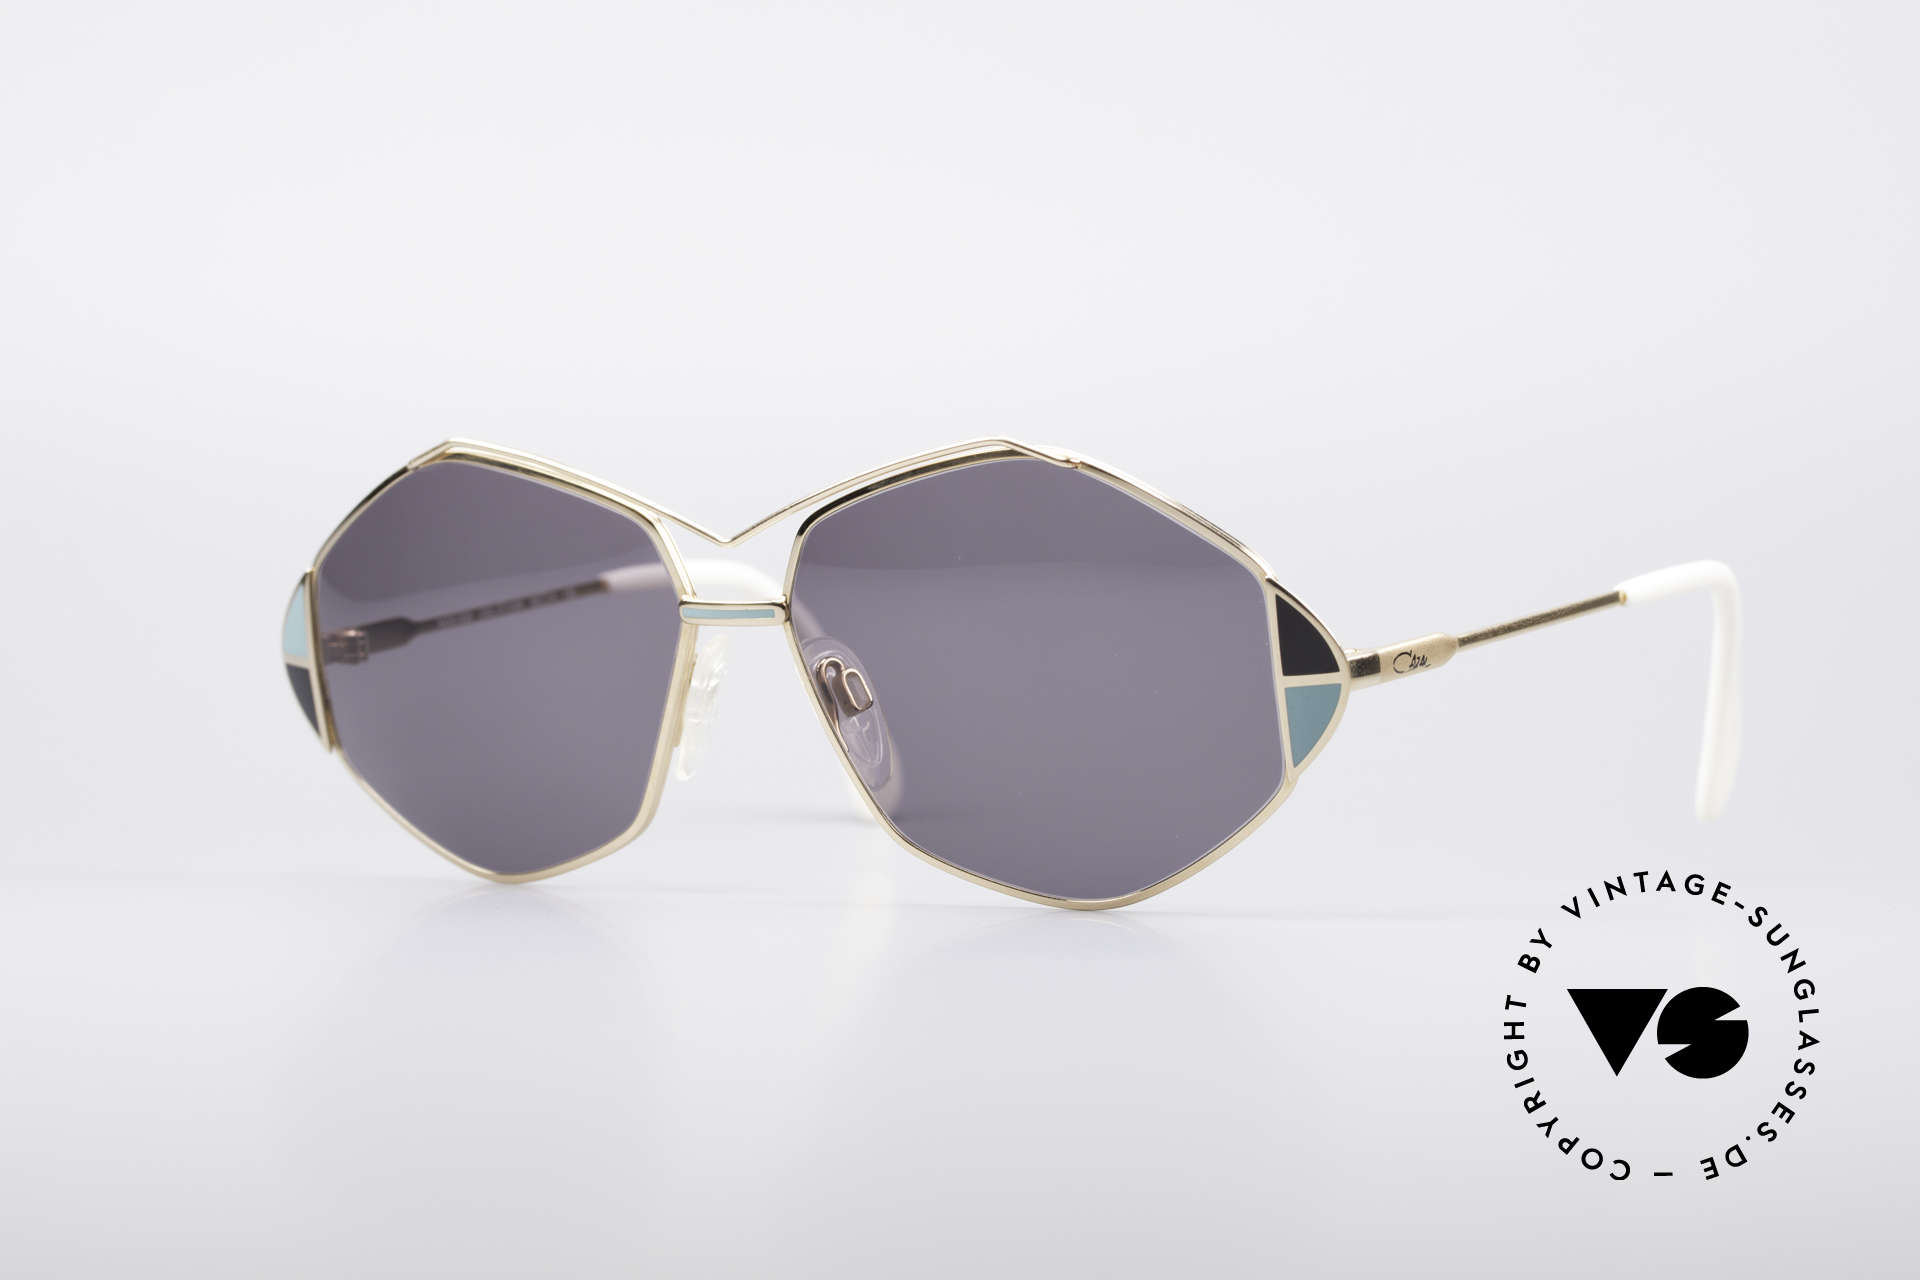 Cazal 233 Vintage West Germany Shades, extraordinary CAZAL sunglasses from 1989/1990, Made for Women